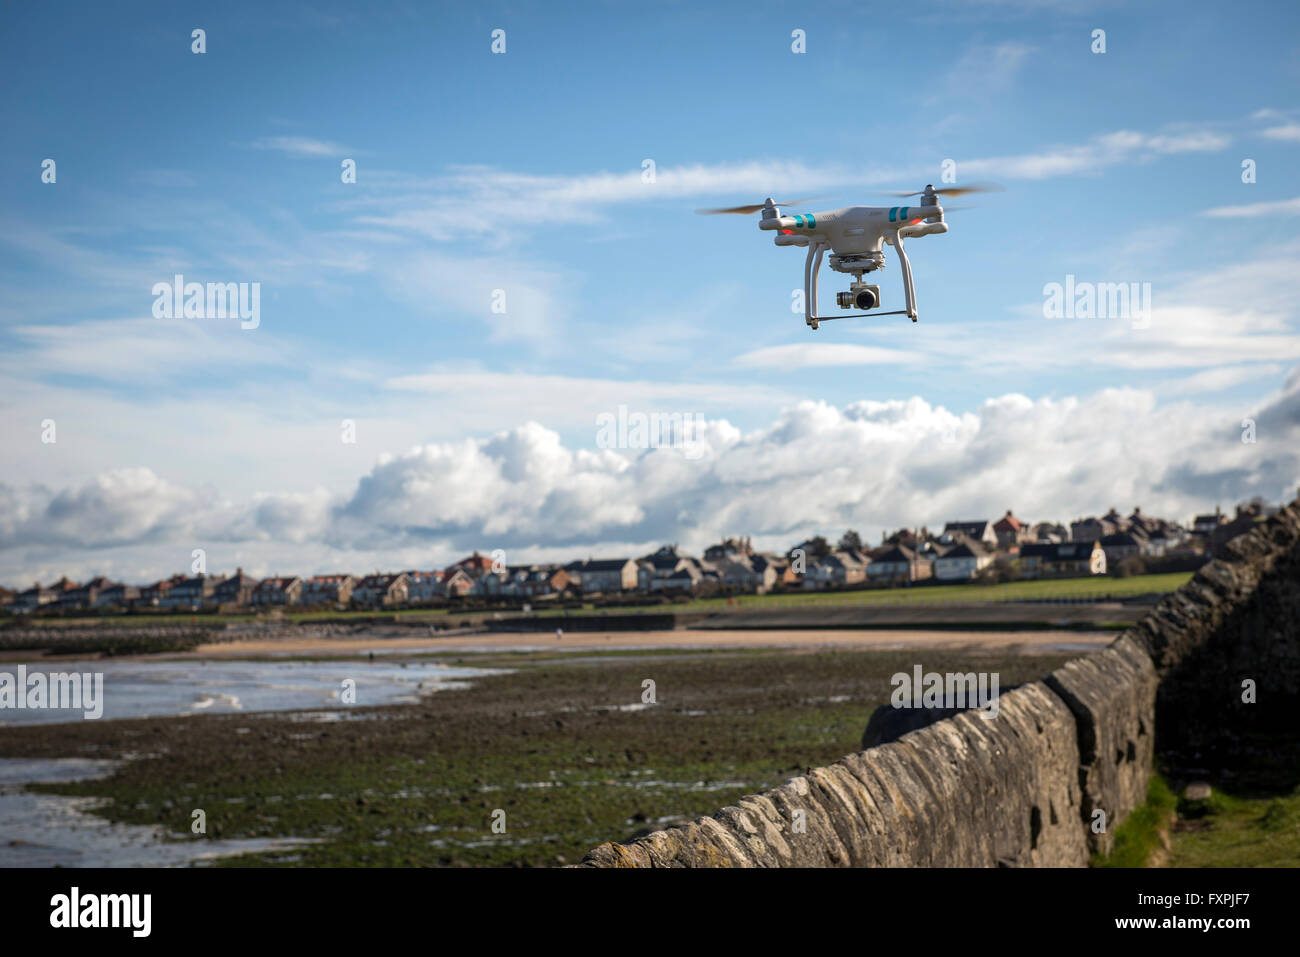 Drone filming over Morcambe Bay, Lancashire, UK - Stock Image